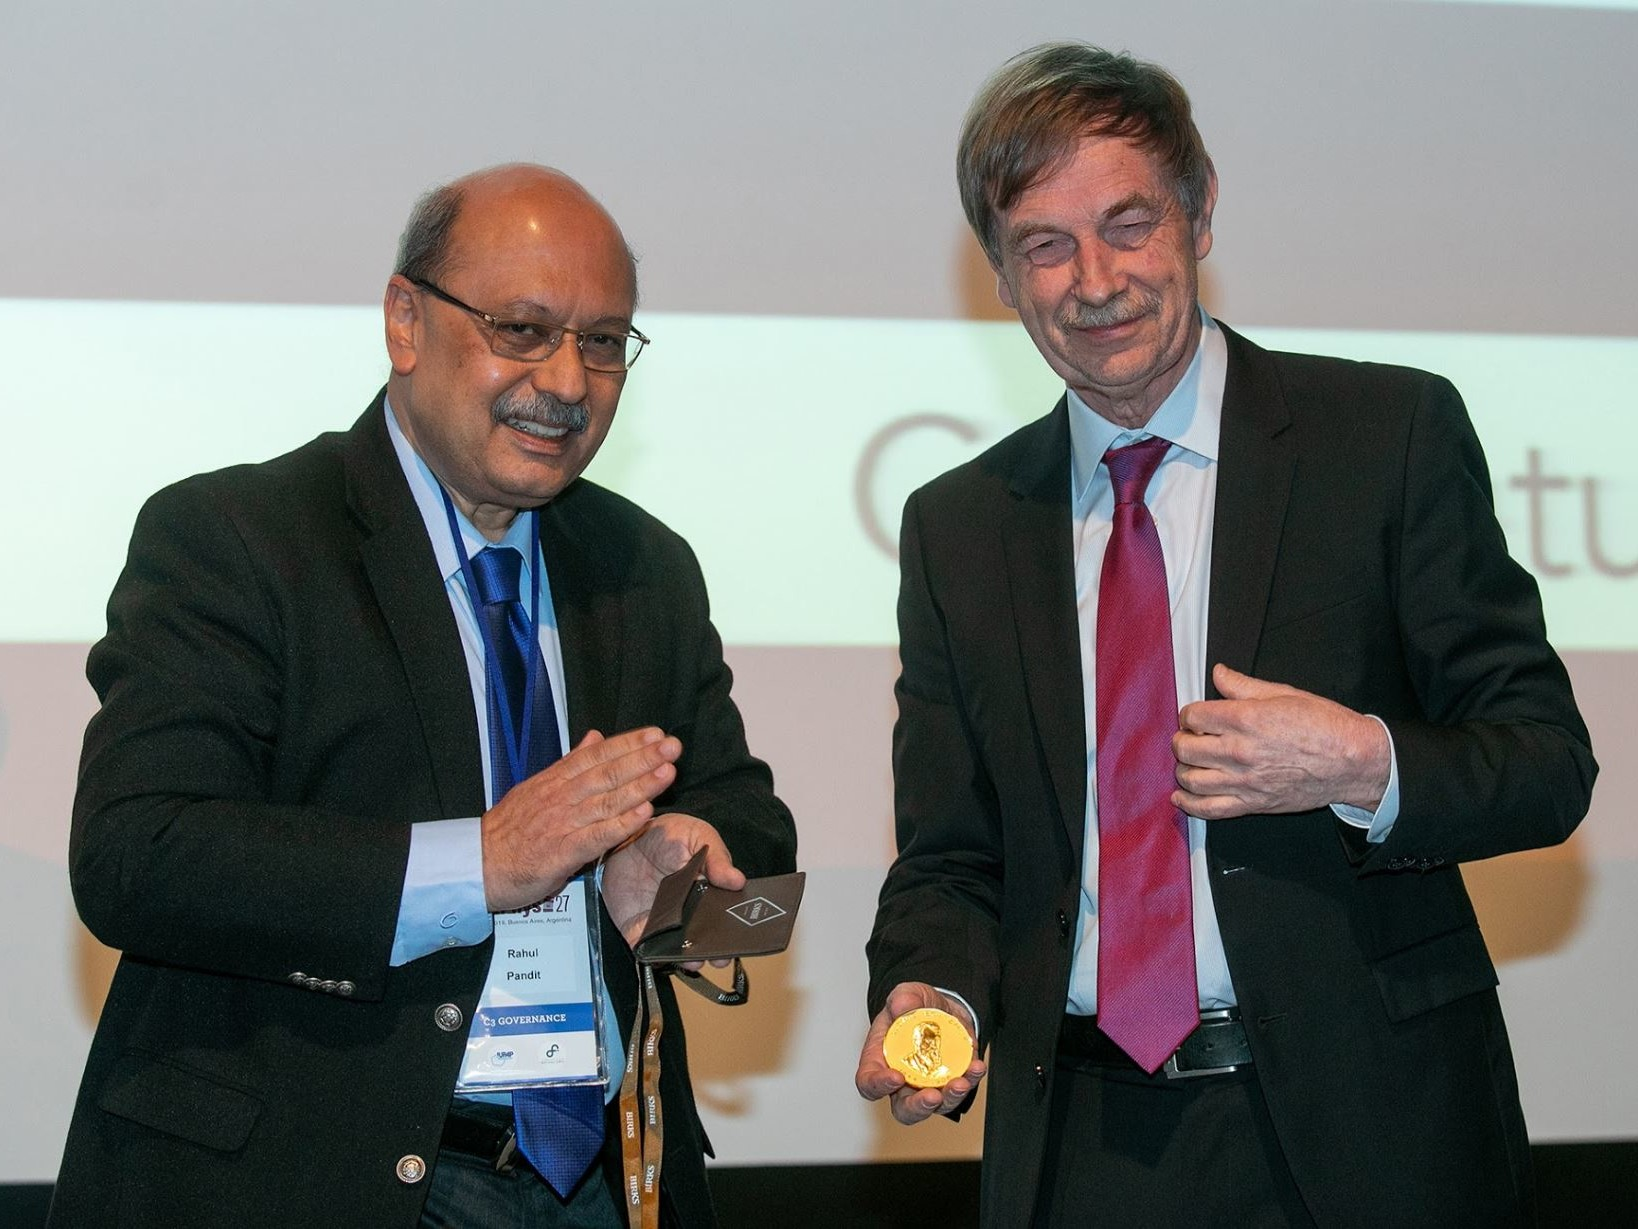 Prof. Rahul Pandit (l.), Chairman of the IUPAP Commission for Statistical Physics, and Prof. em. Herbert Spohn (r.) in Buenos Aires with the Boltzmann Medal